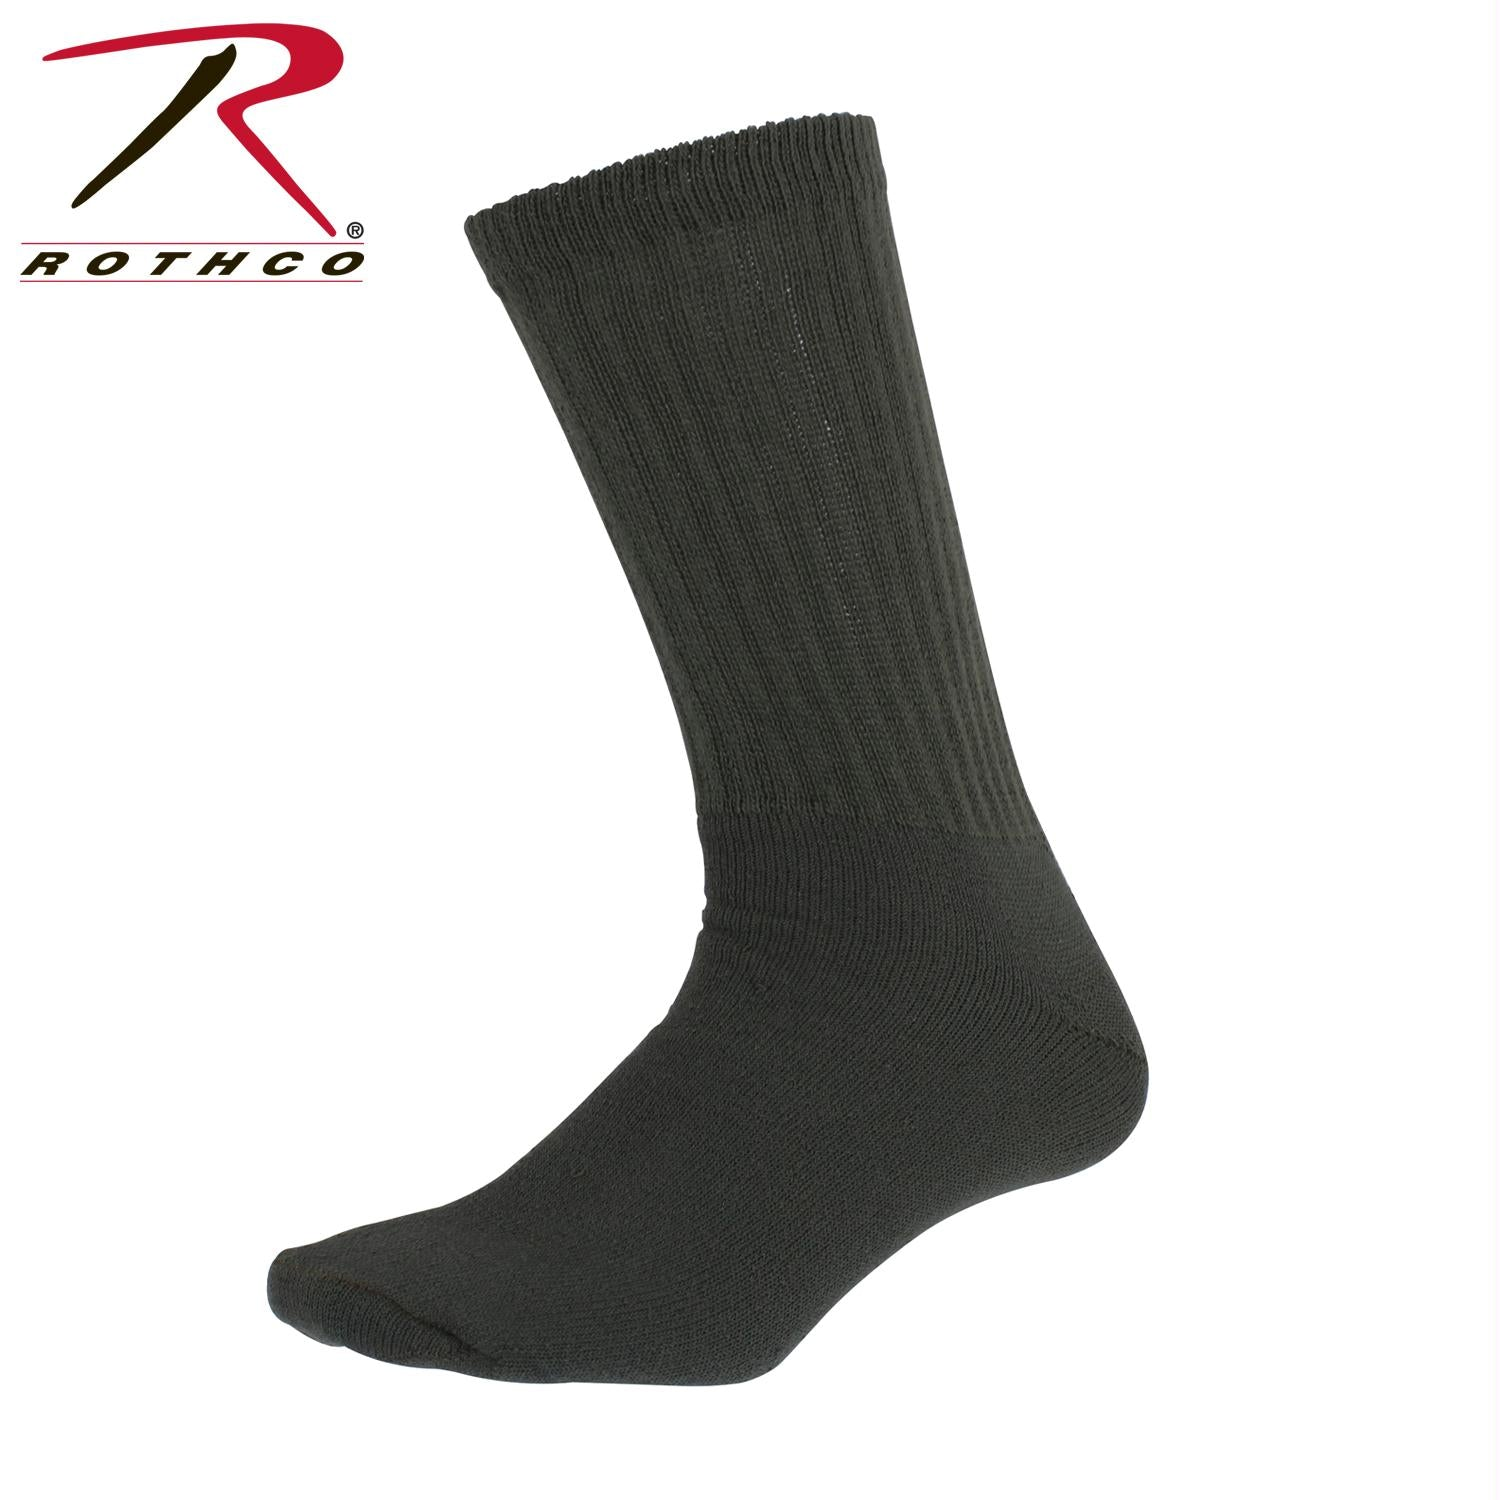 Rothco Athletic Crew Socks - Olive Drab / L